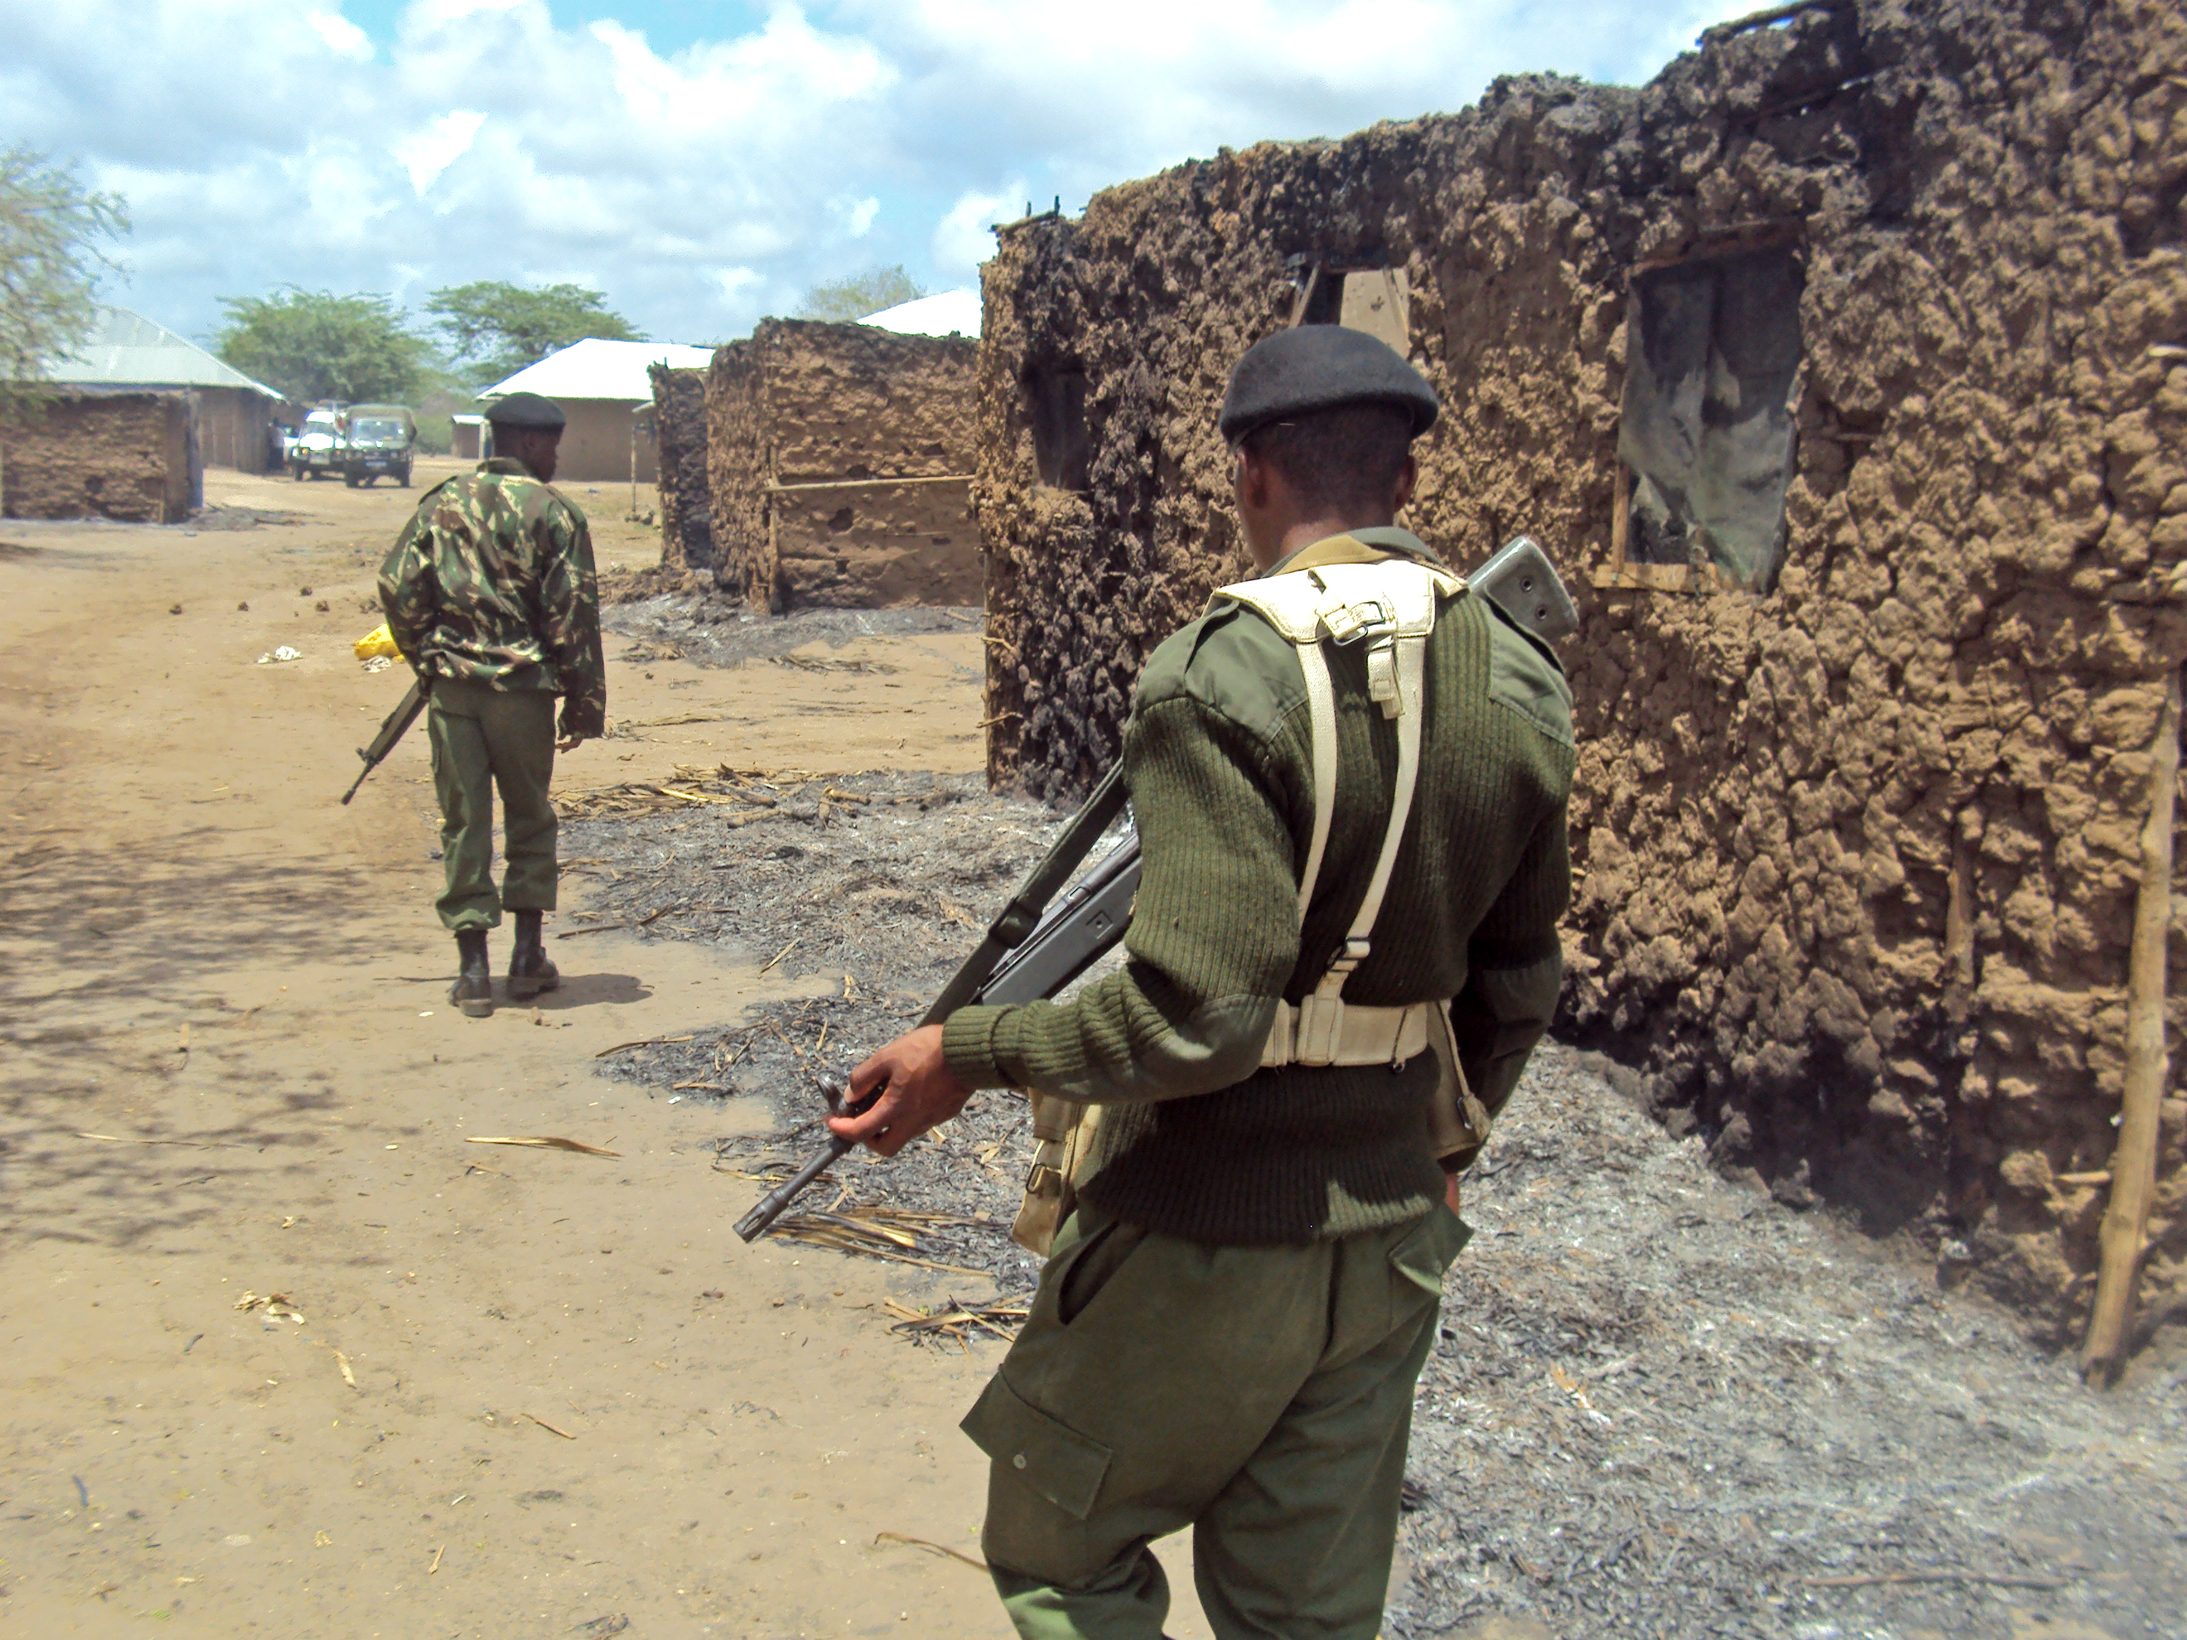 About a month of ethno-political violence in Coast Province's Tana River County has led to the deaths of over 100 people, including some police officers